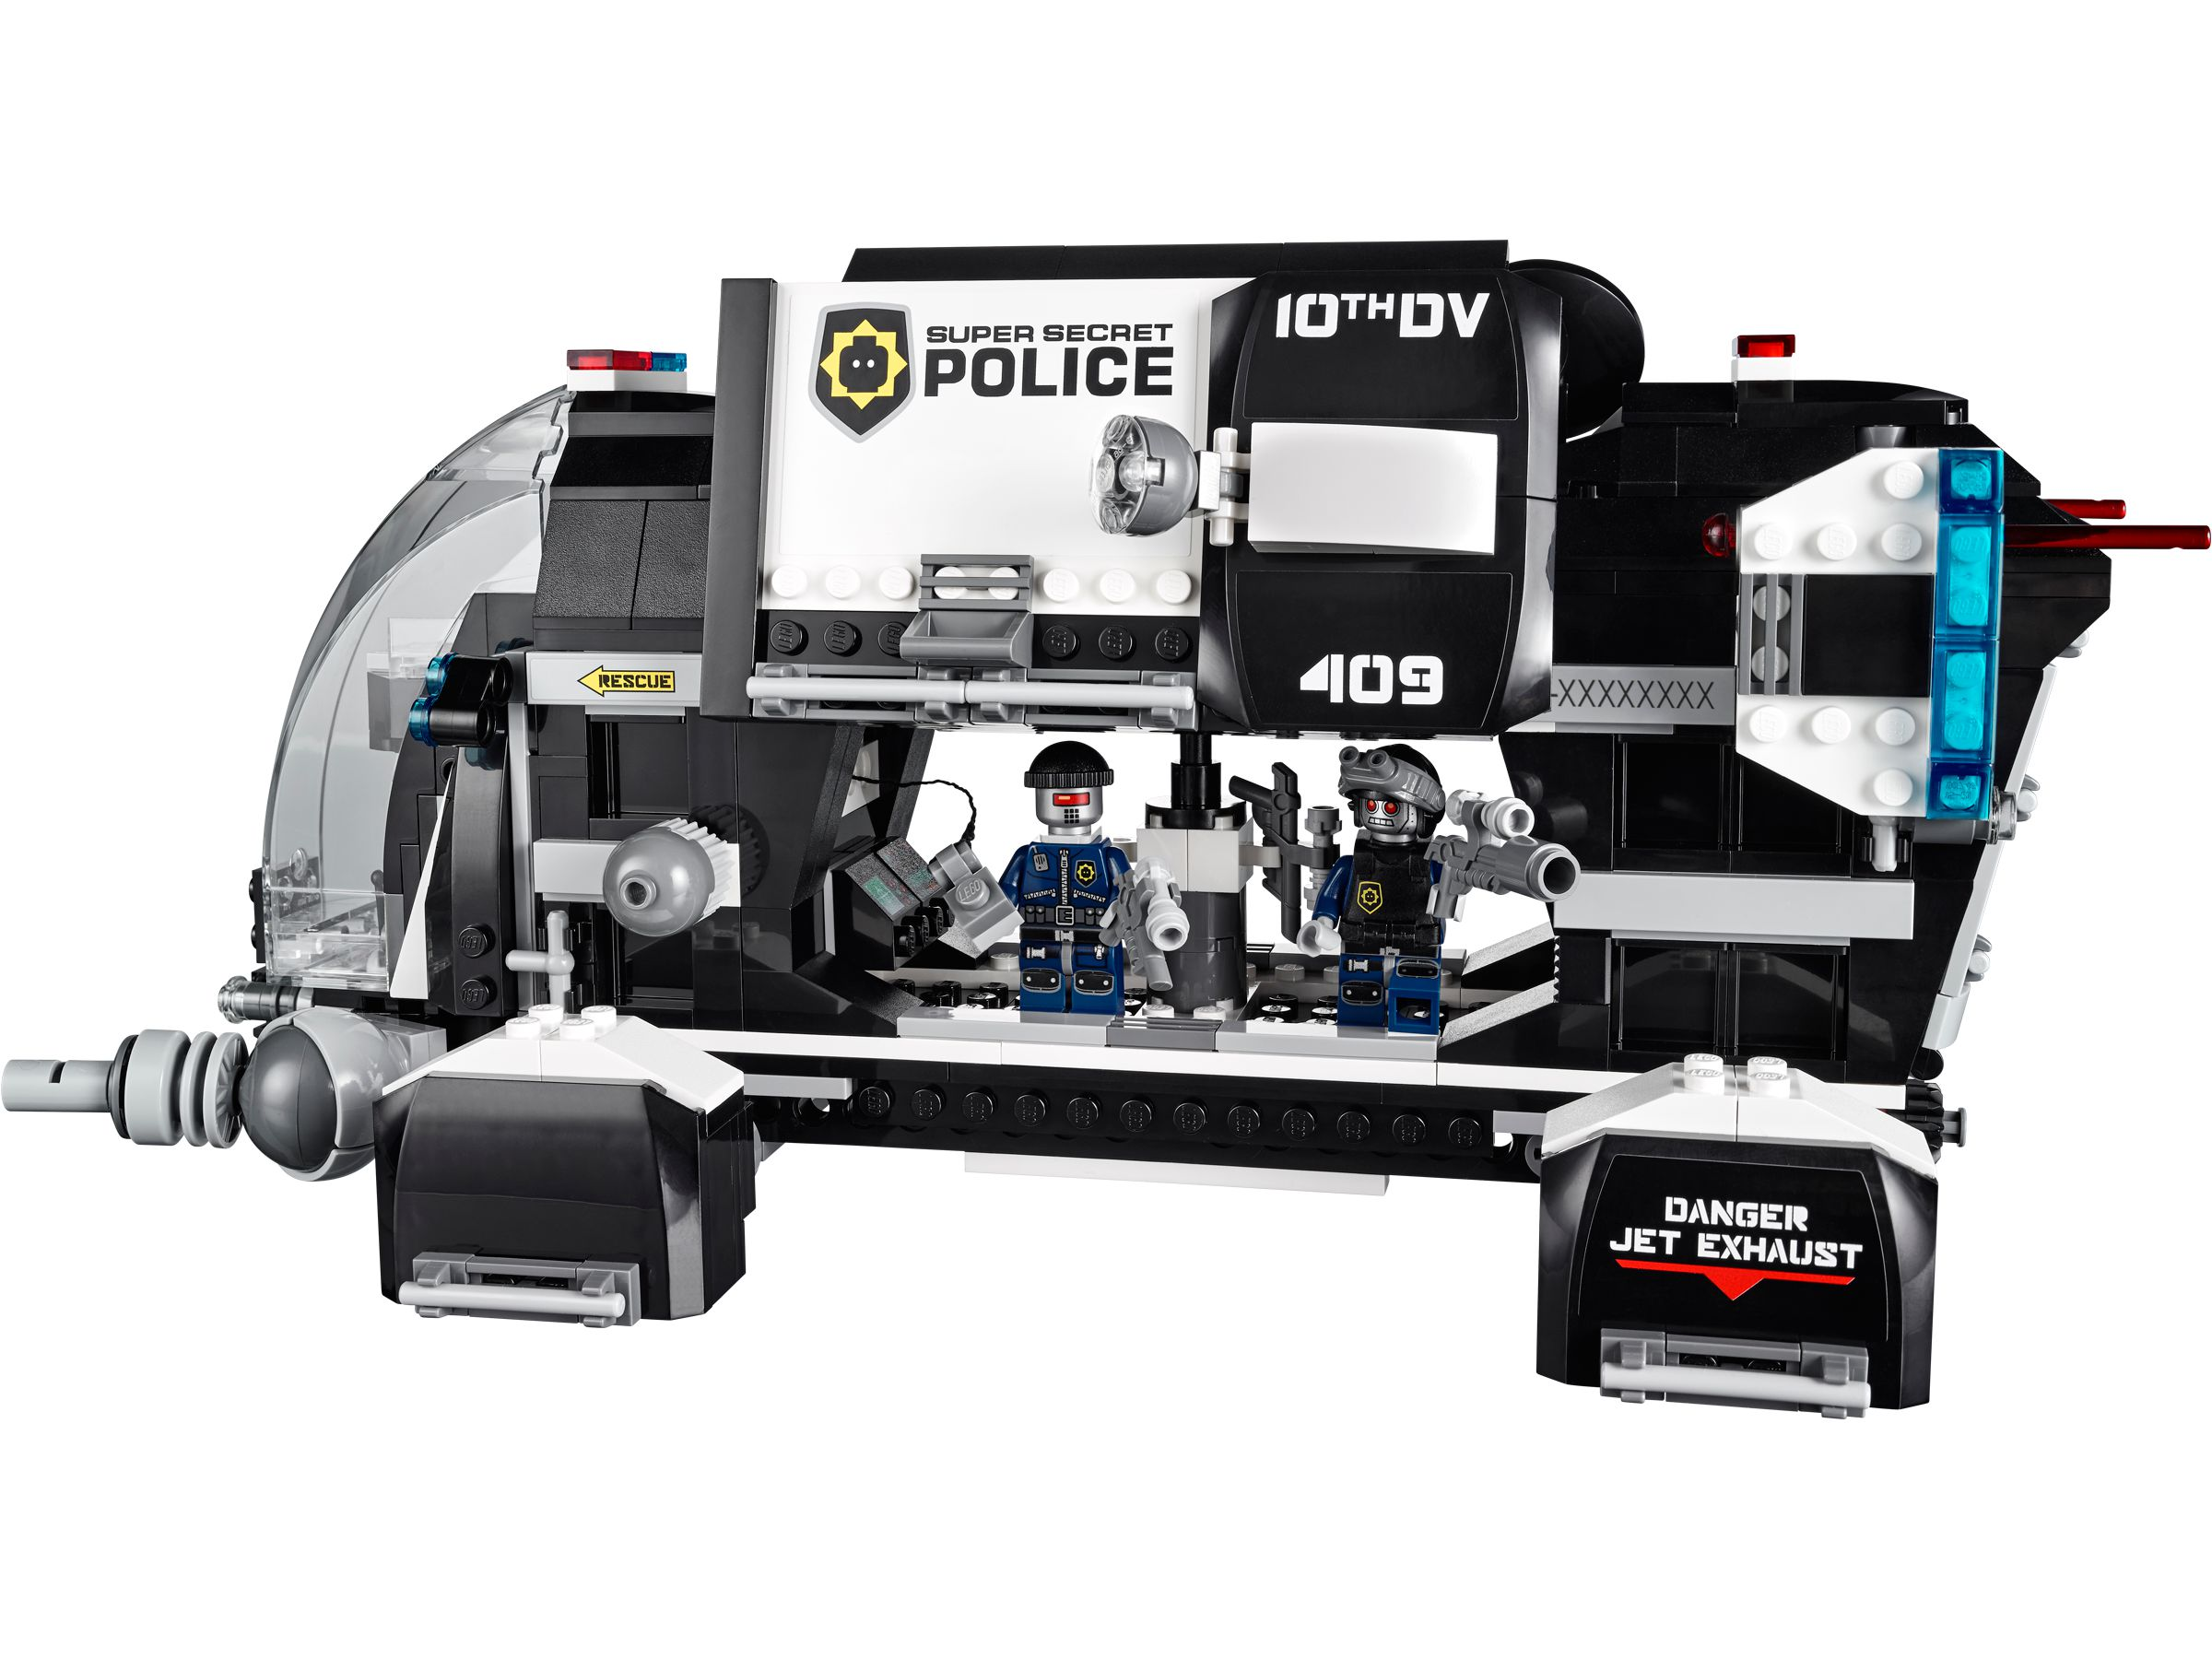 LEGO The LEGO Movie 70815 Raumschiff der Super-Geheimpolizei LEGO_70815_alt2.jpg